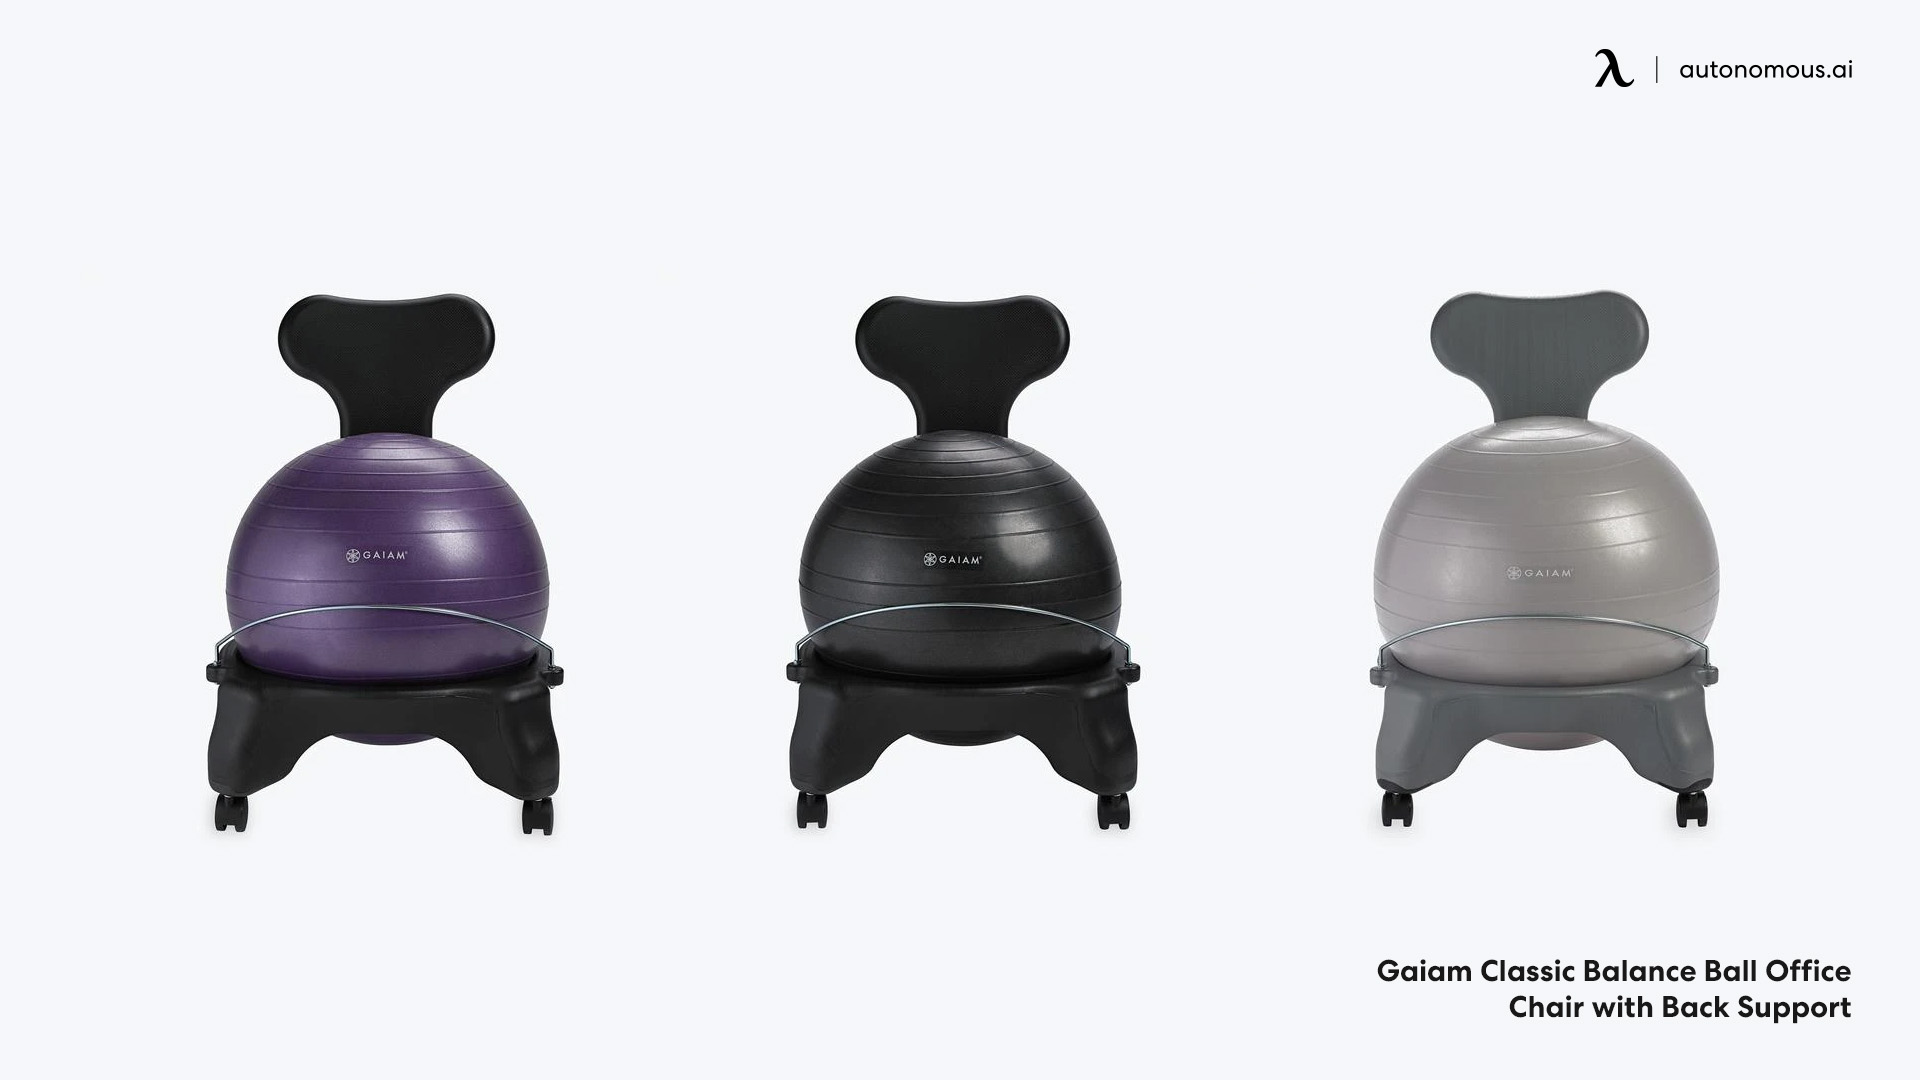 Balance ball office chair with back support